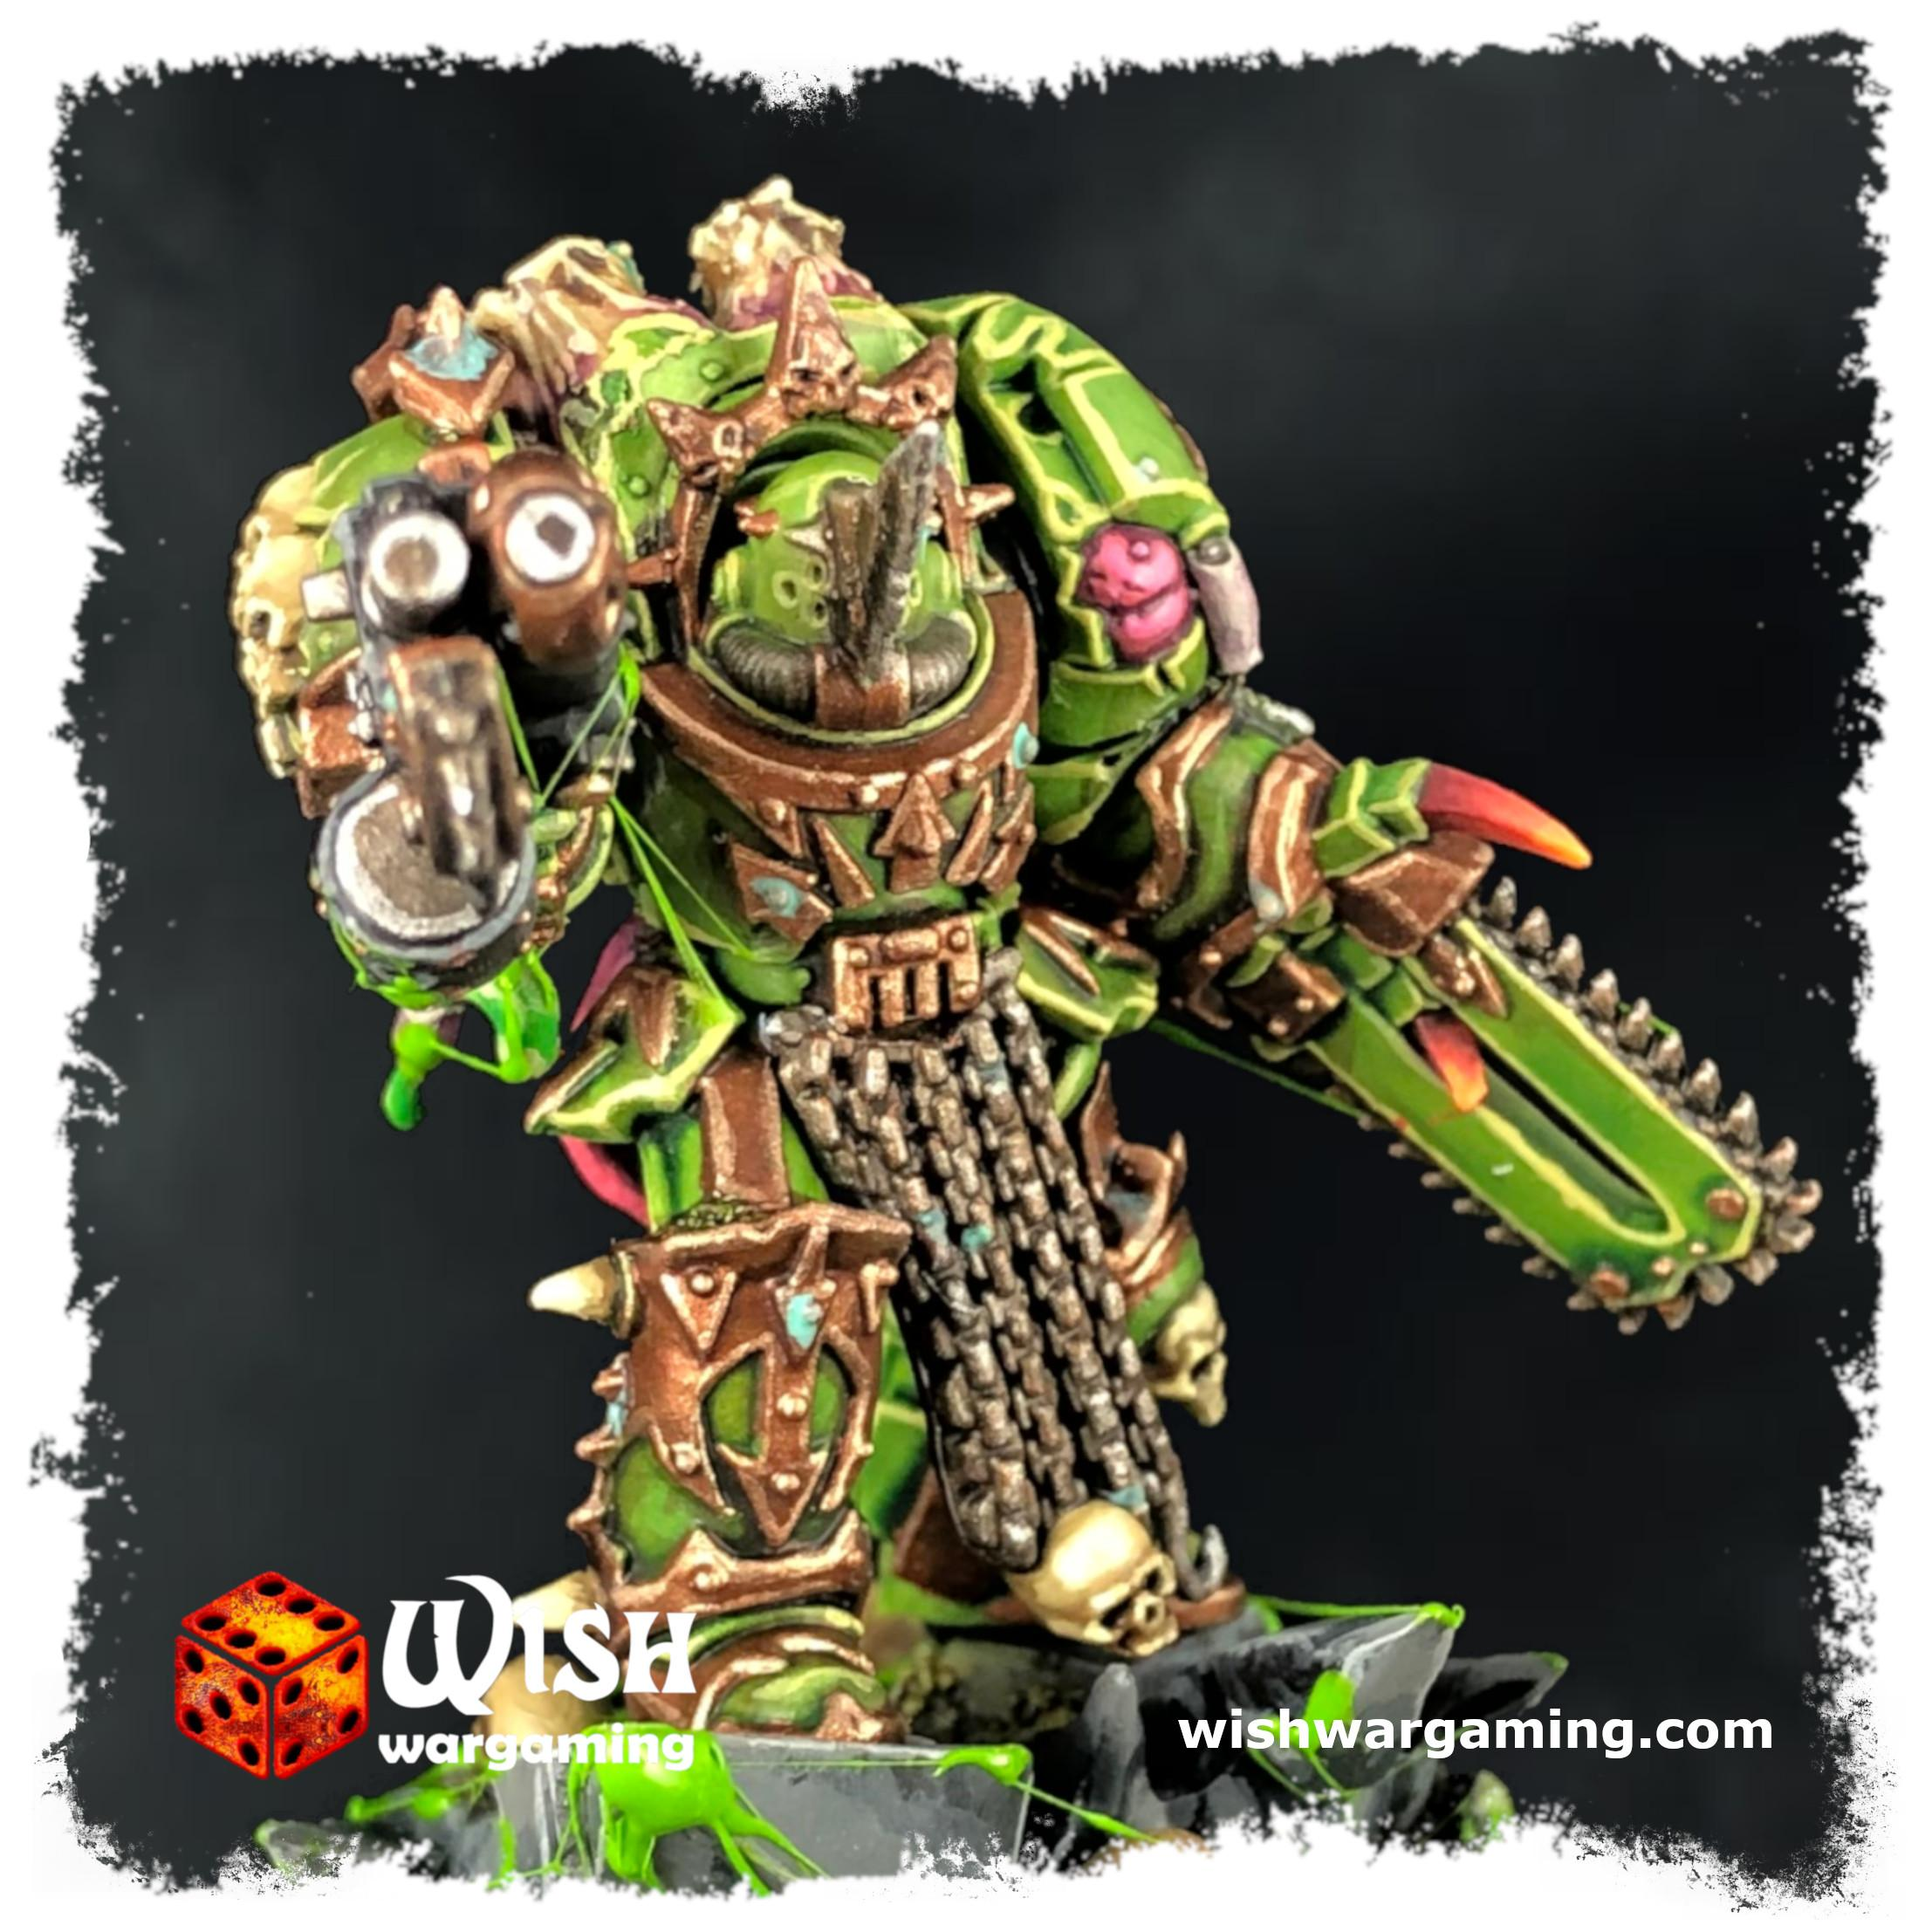 Chaos, Chaos Lord, Chaoslord, Death, Death Guard, Death Guard Lord, Guard, Lord, Lord Of Contagion, Nurgle, Plague Marines